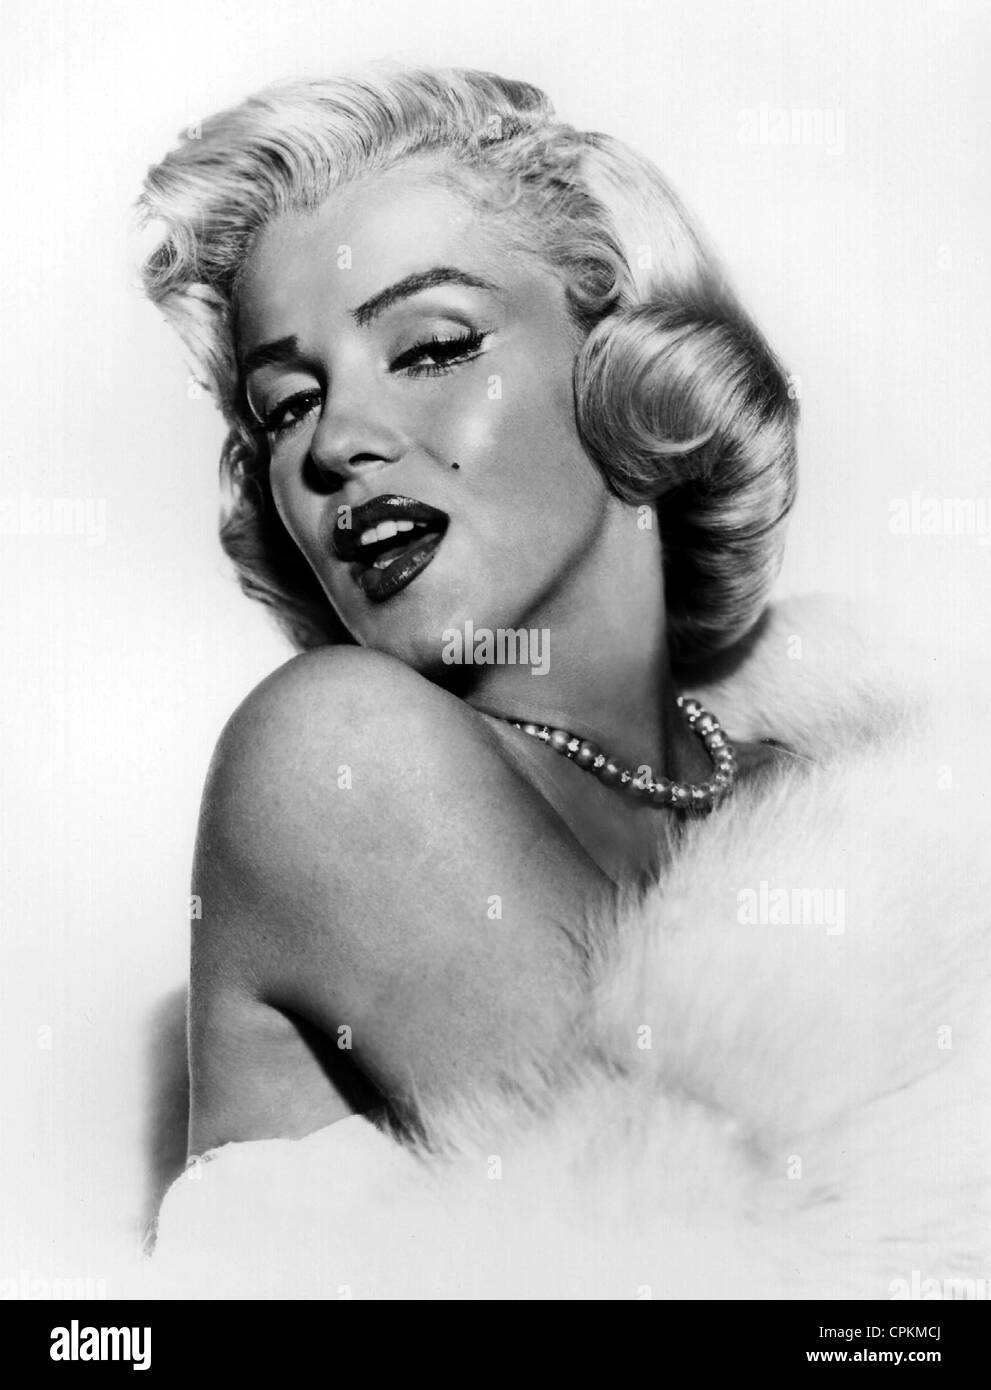 Star Of Marilyn Monroe Stock Photos & Star Of Marilyn Monroe Stock